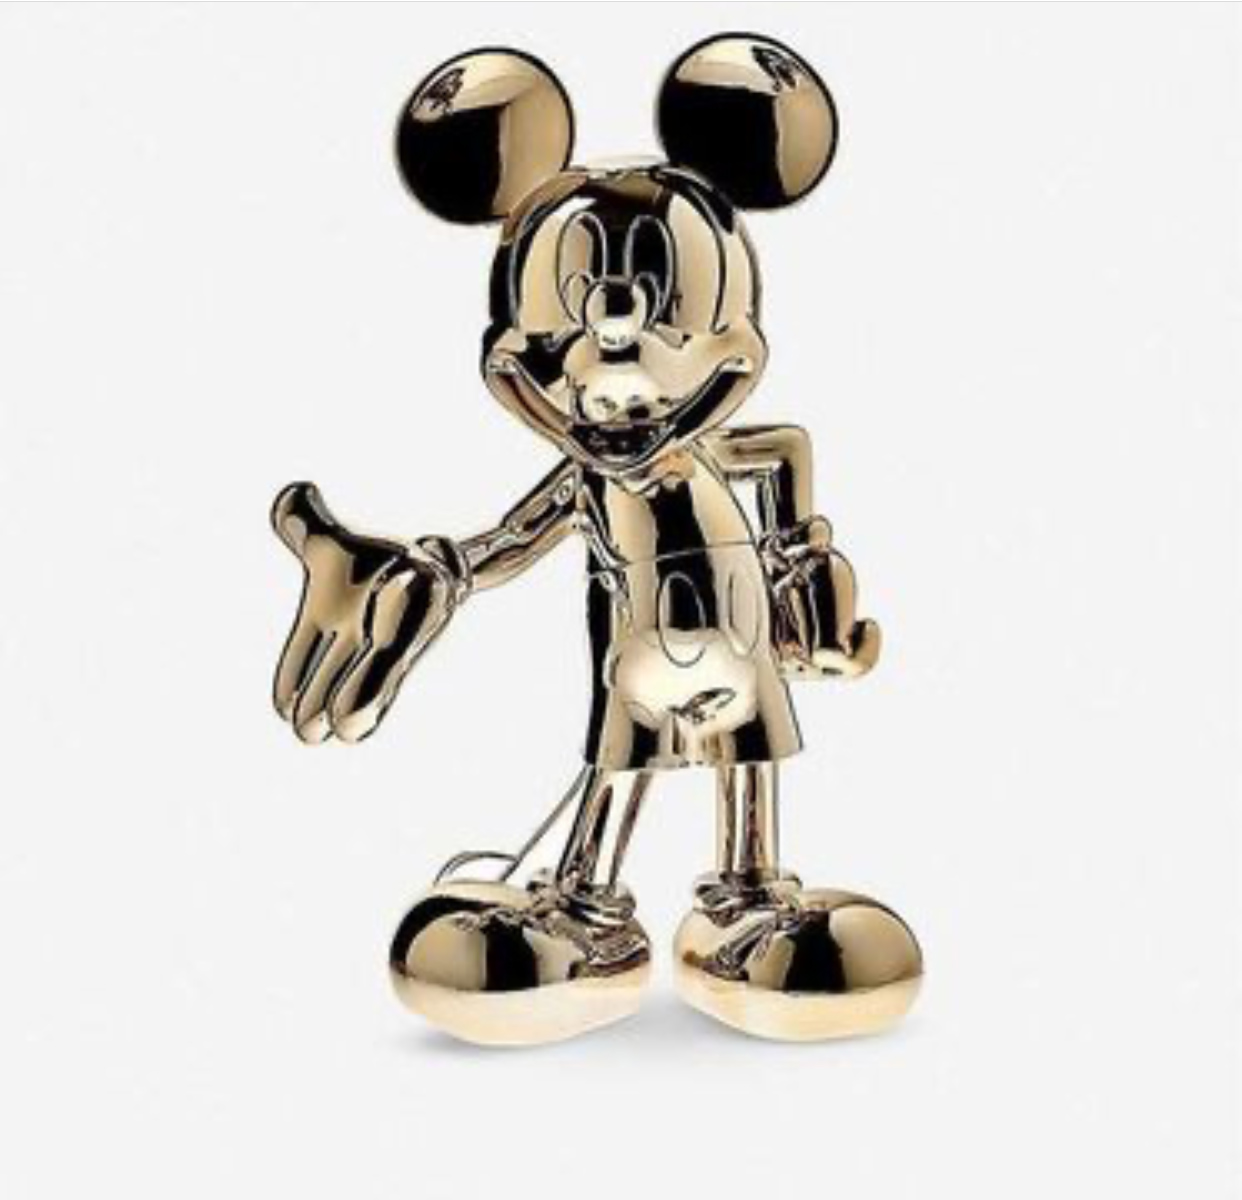 Cute Cartoon Stainless Steel Mickey Mouse sculpture